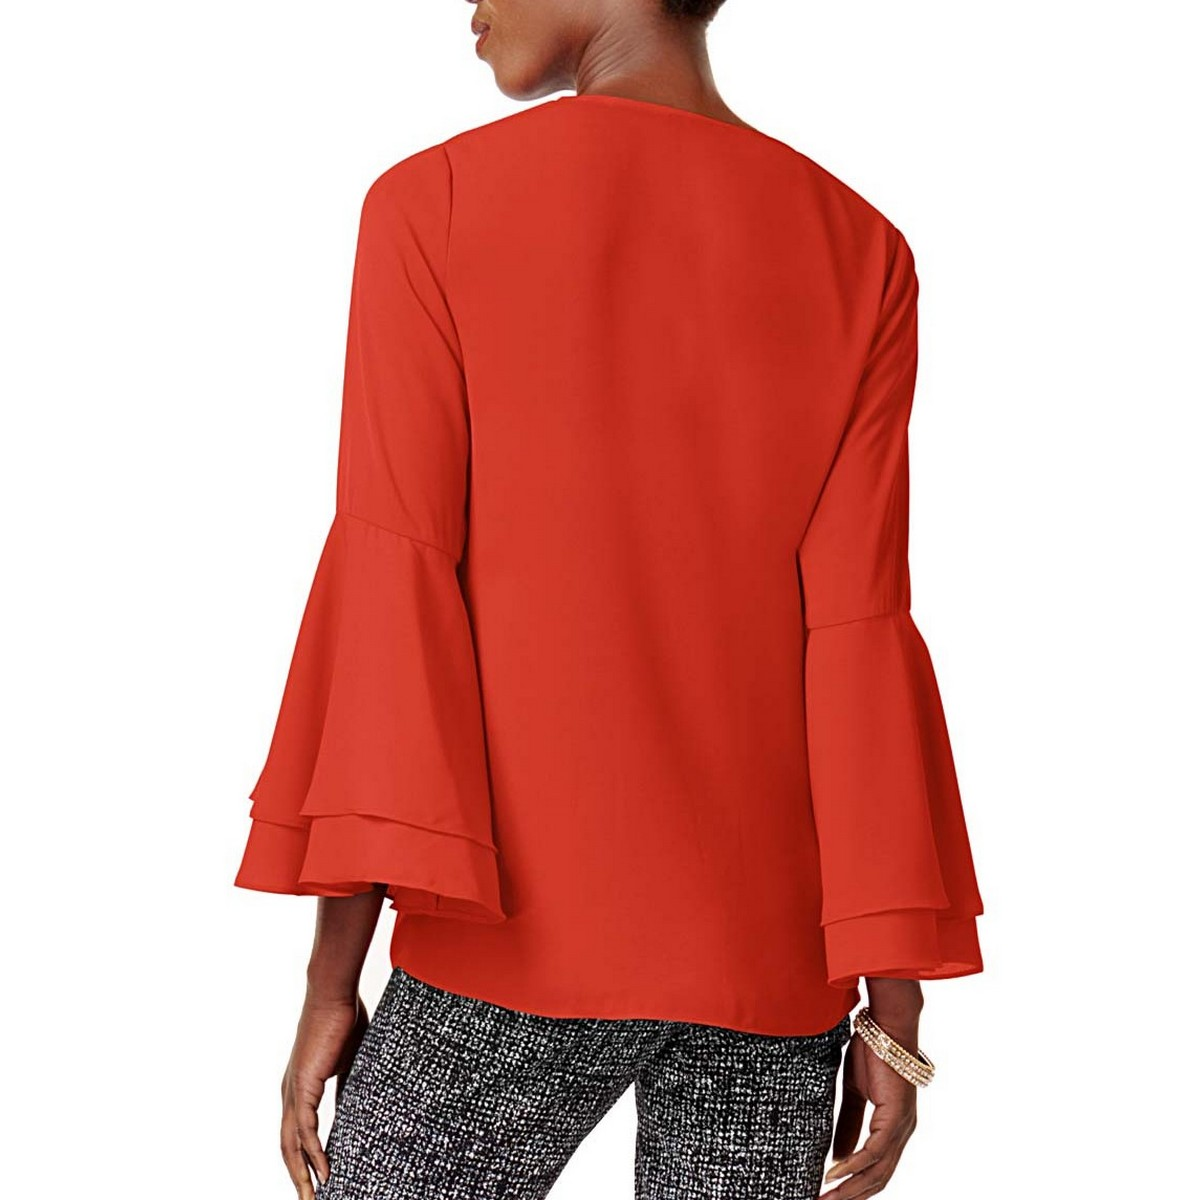 ALFANI-NEW-Women-039-s-V-neck-Bell-Sleeve-Blouse-Shirt-Top-TEDO thumbnail 4